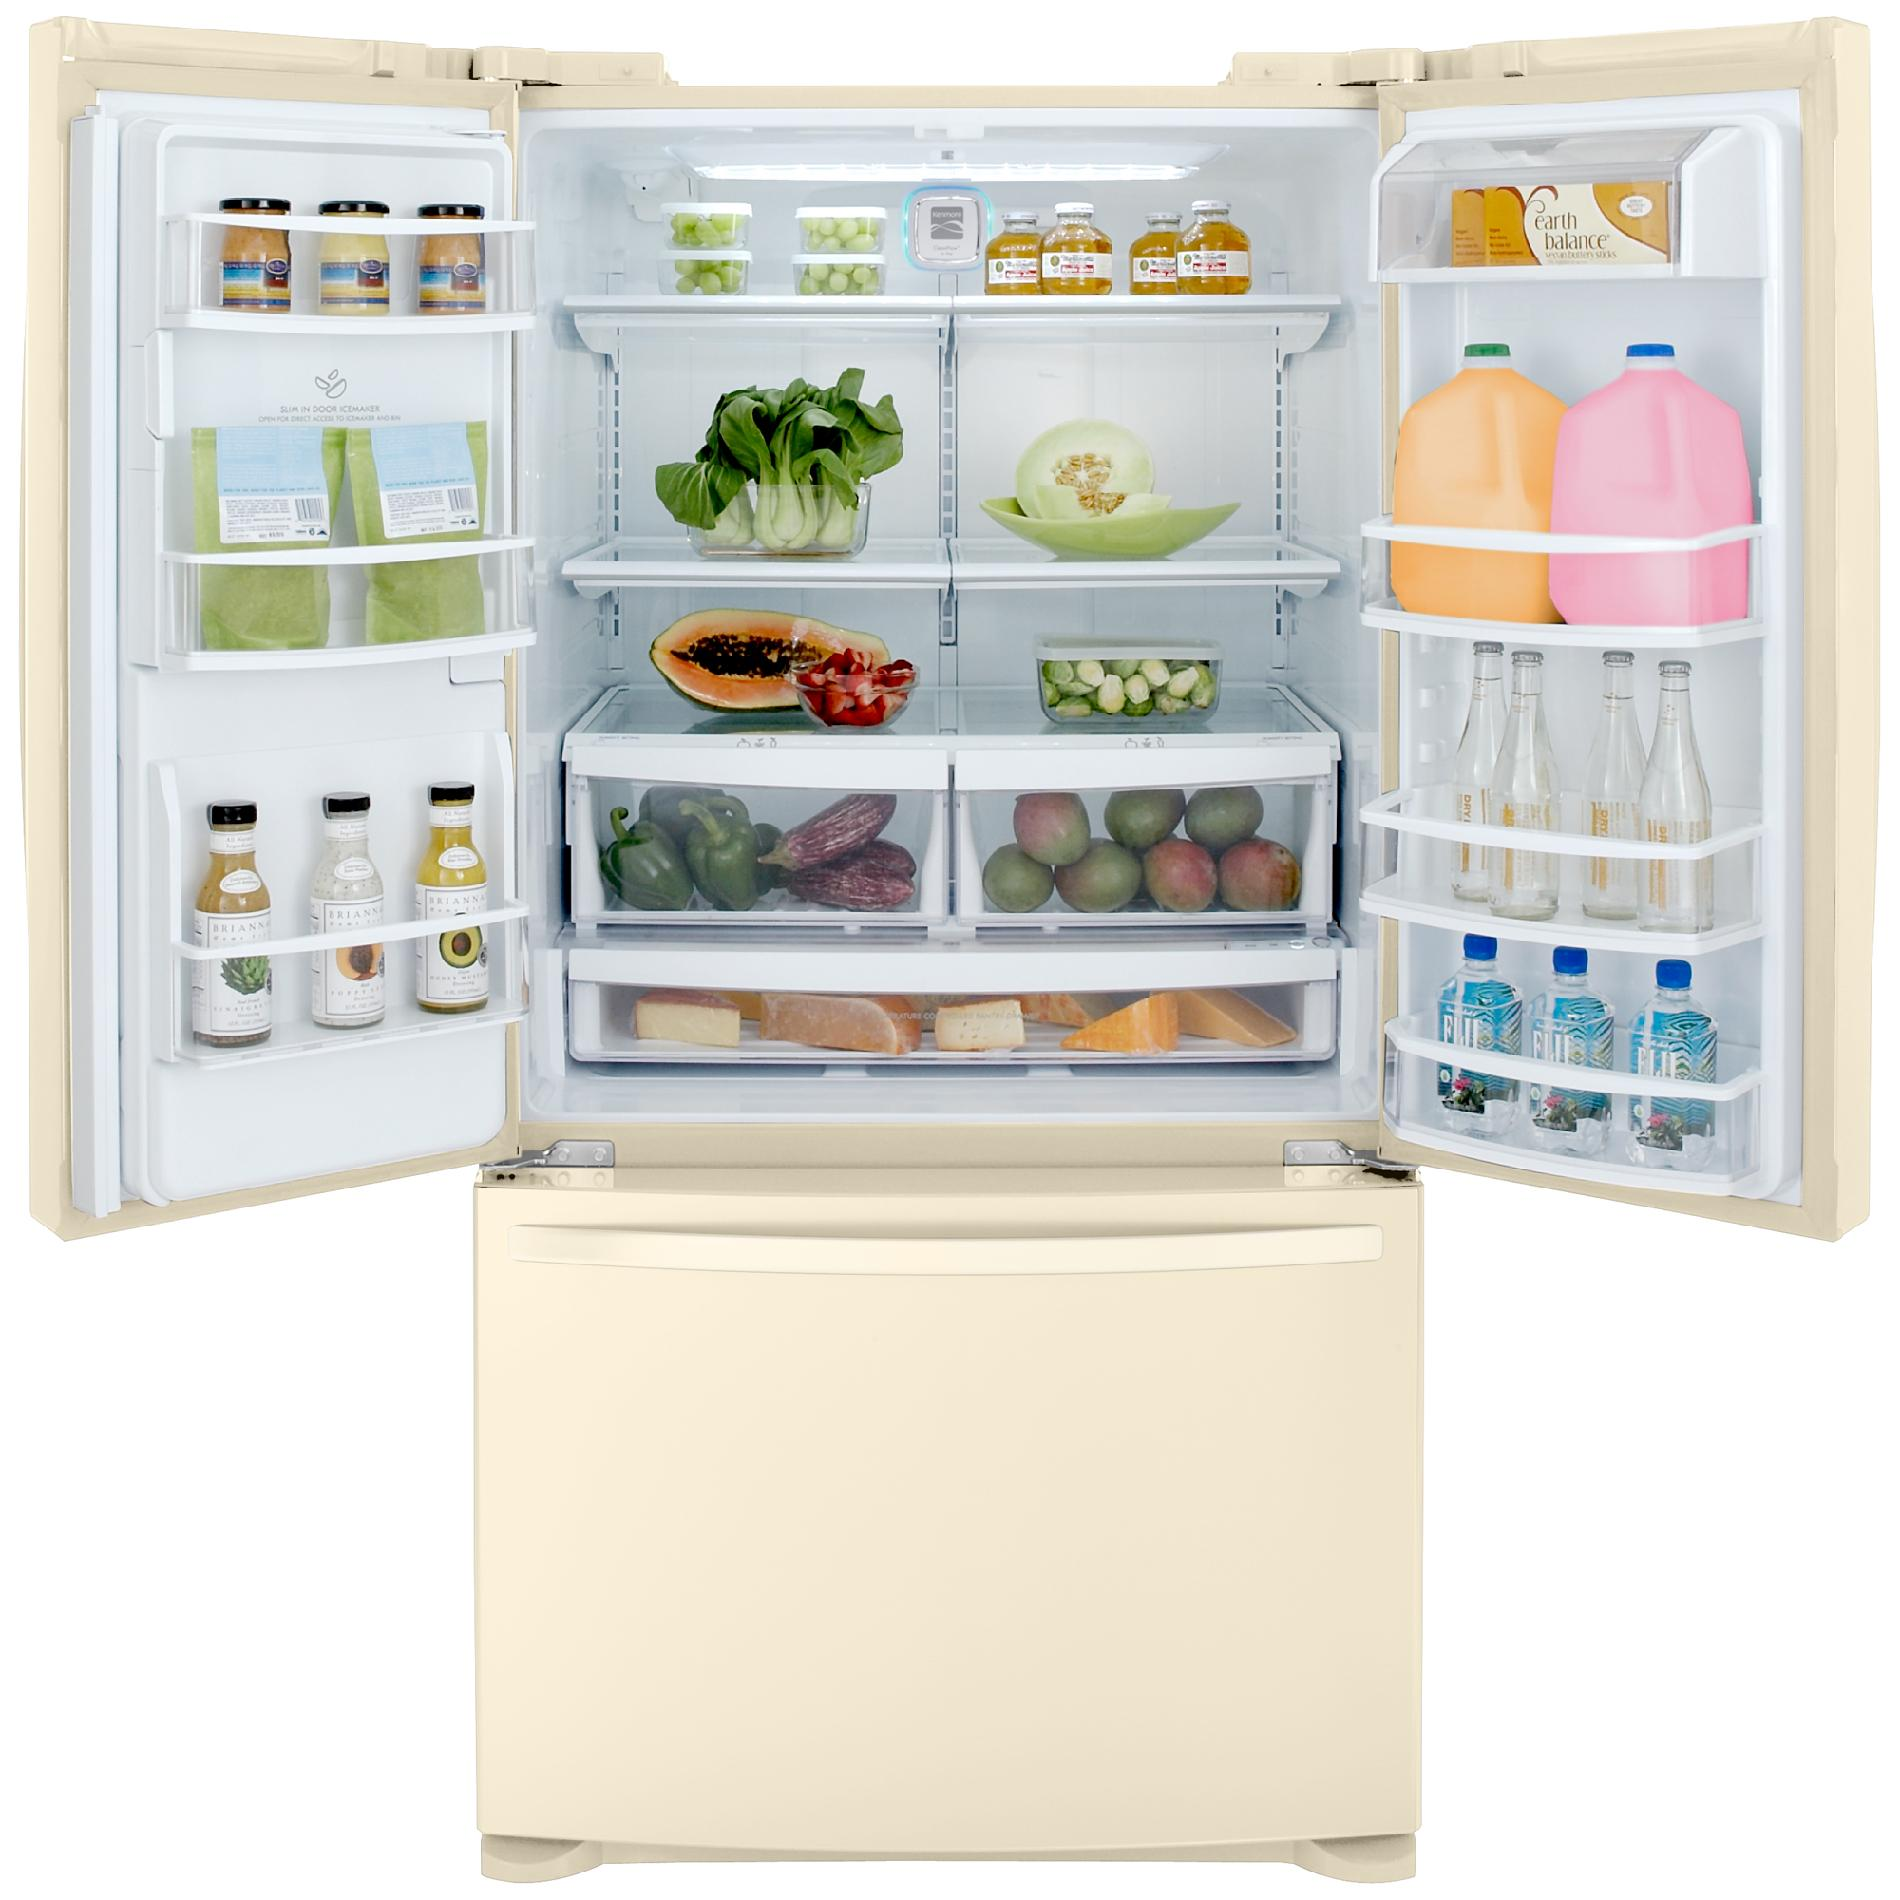 Kenmore 73054 26.8 cu. ft. French Door Bottom-Freezer Refrigerator